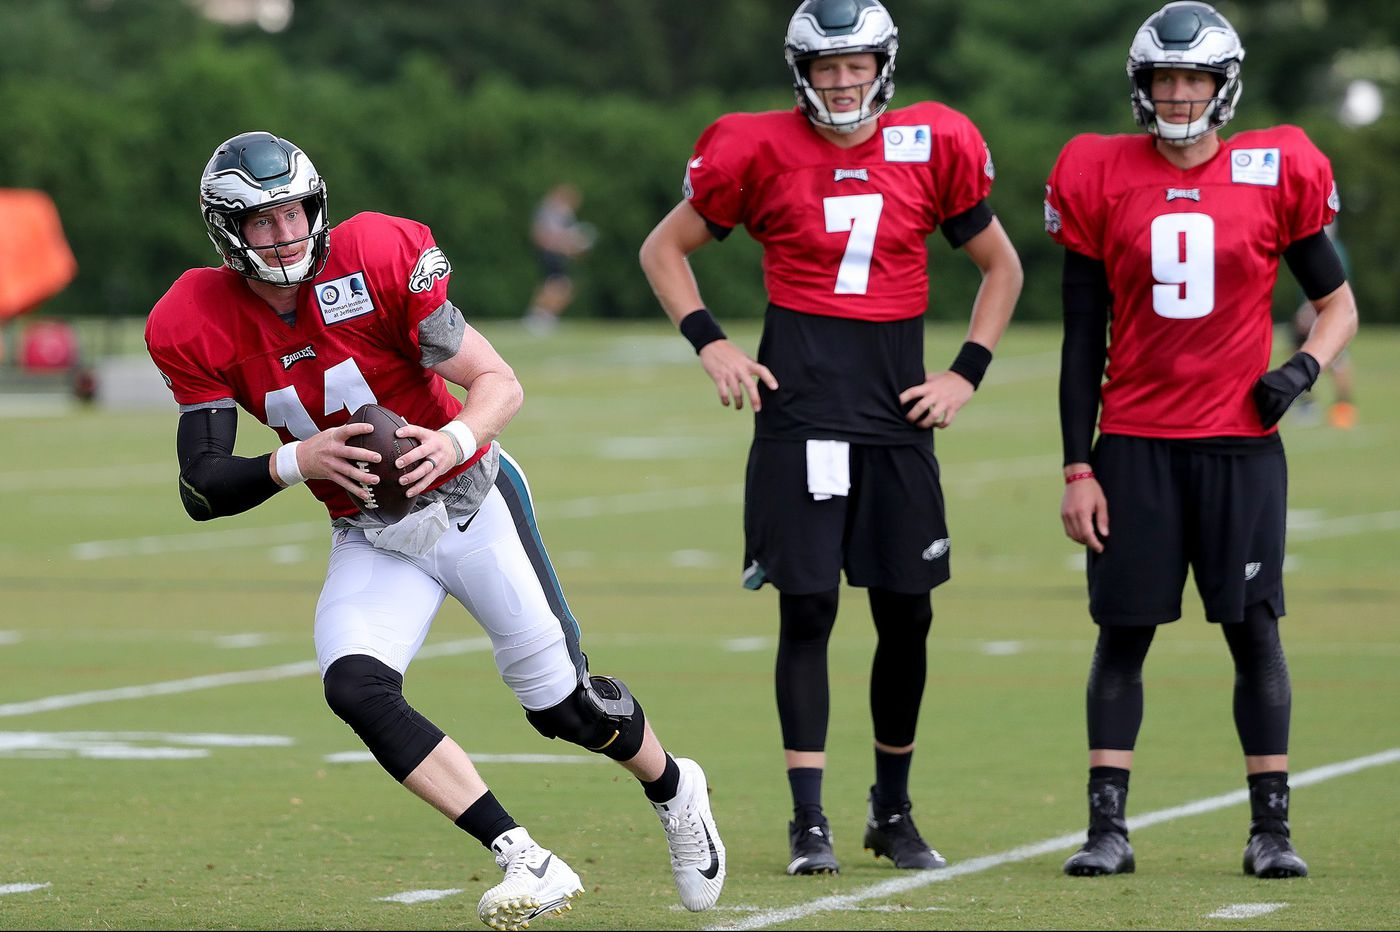 Eagles practice observations: Dallas Goedert a red zone threat; Rasul Douglas gets a brief promotion; Shelton Gibson concussed